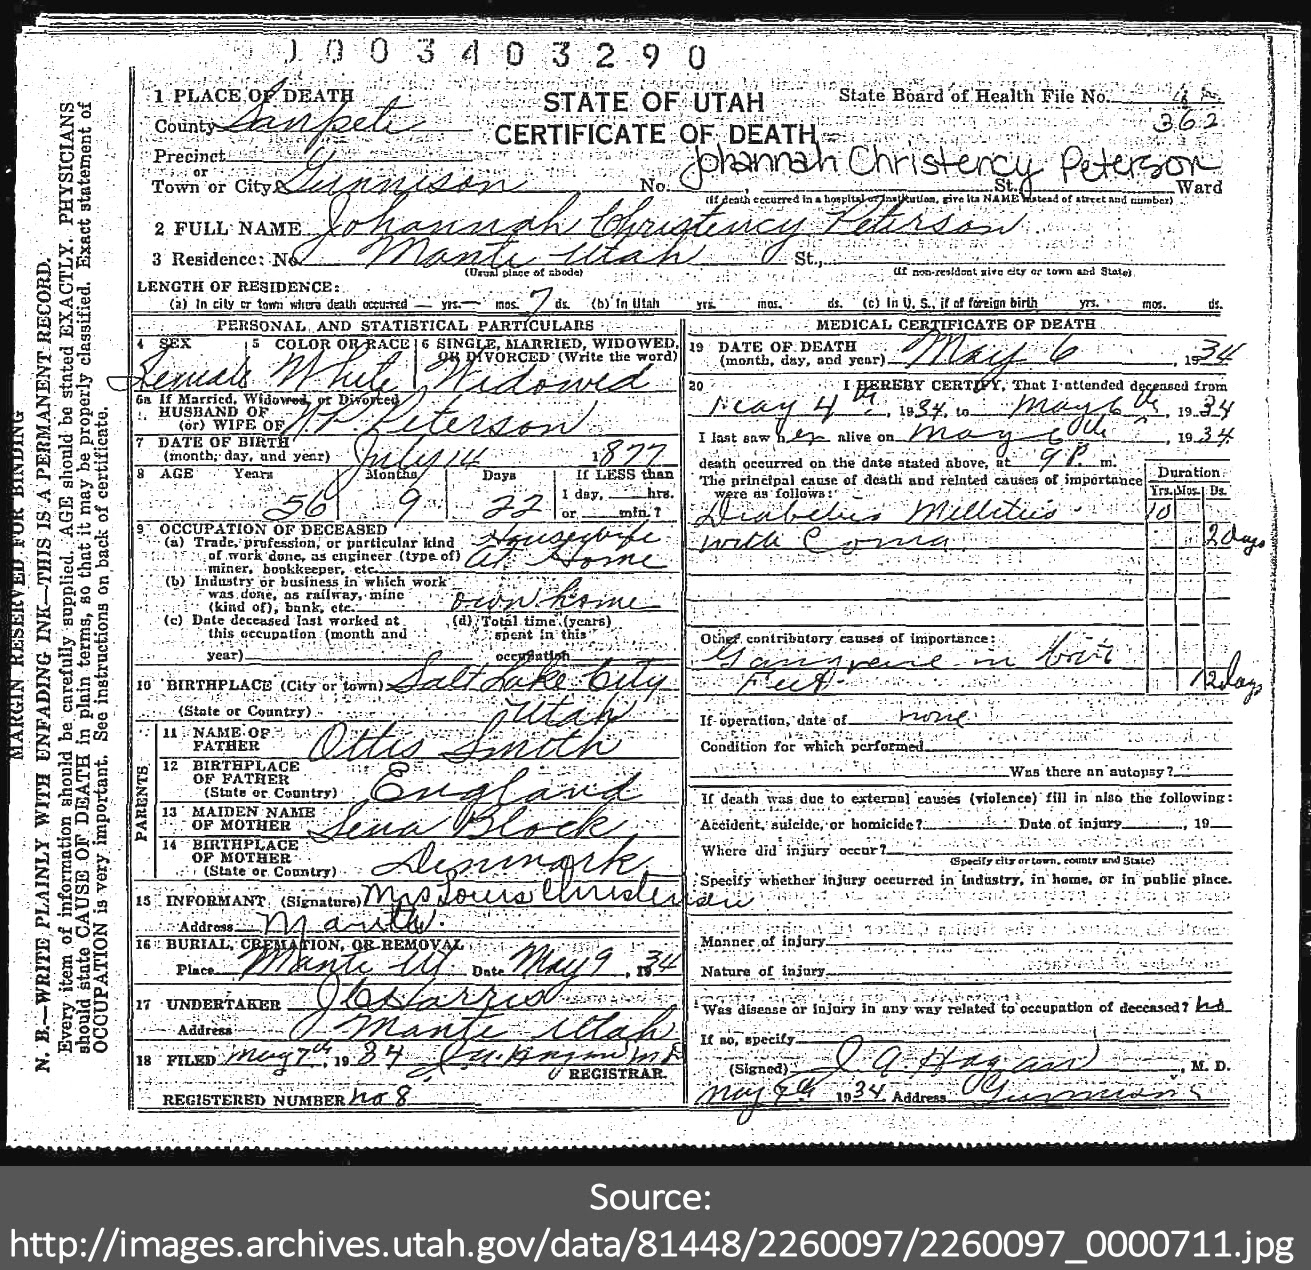 Death Certificate Of Johannah Christency Peterson Johanna